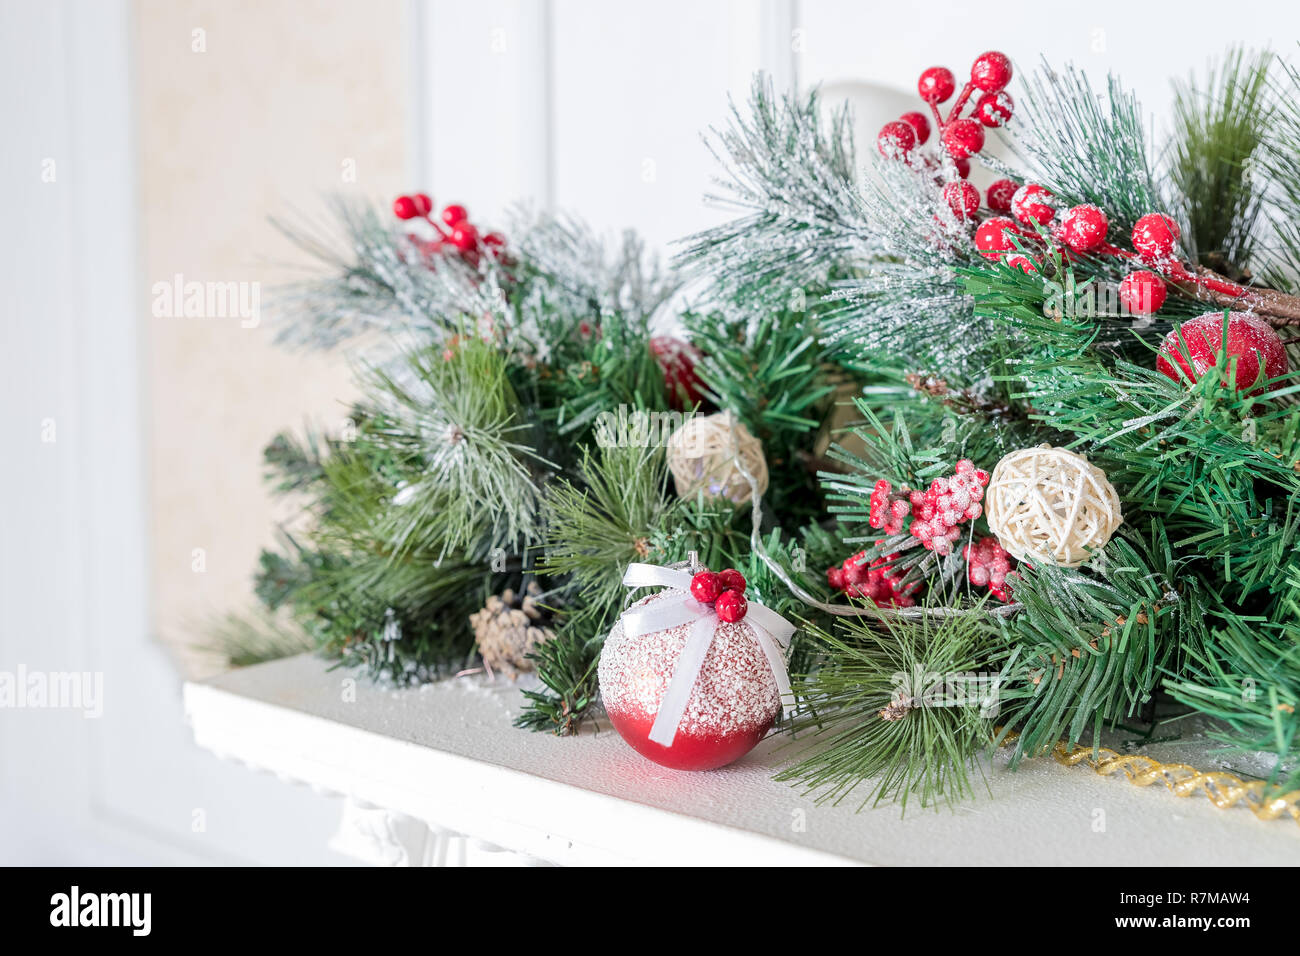 Christmas decoration of holly berry and pine cone.Christmas background. Green branches with red berries. Home decor for holidays. decoration balls with fir cones and fir branches, white candle. - Stock Image